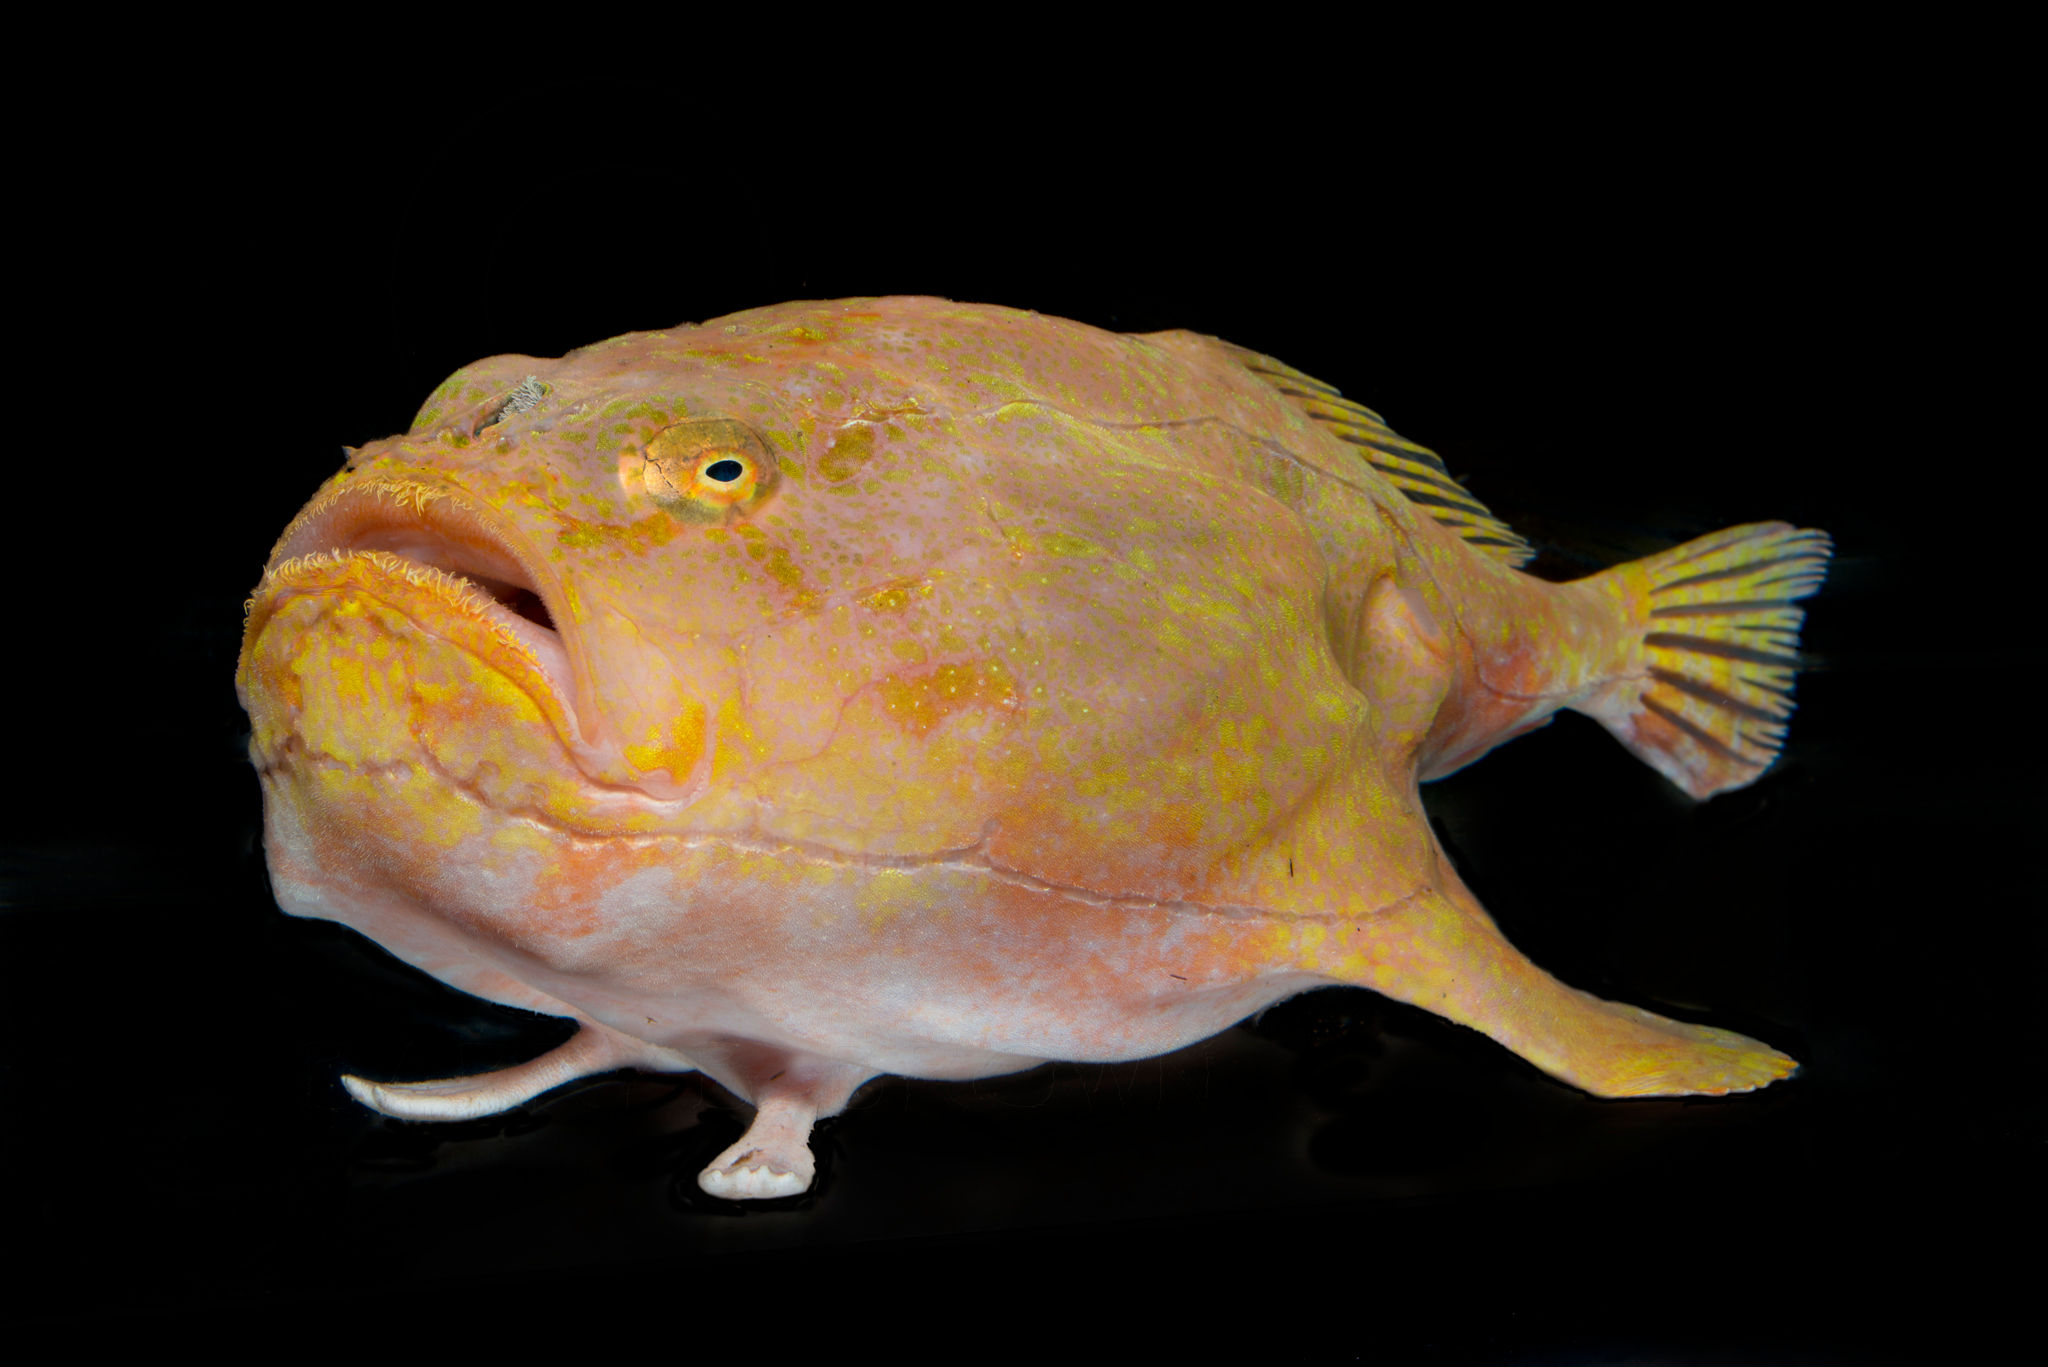 A sea toad from the deep waters off of Curacao.<div class='credit'><strong>Credit:</strong> A sea toad from the deep waters off of Curacao.</div>